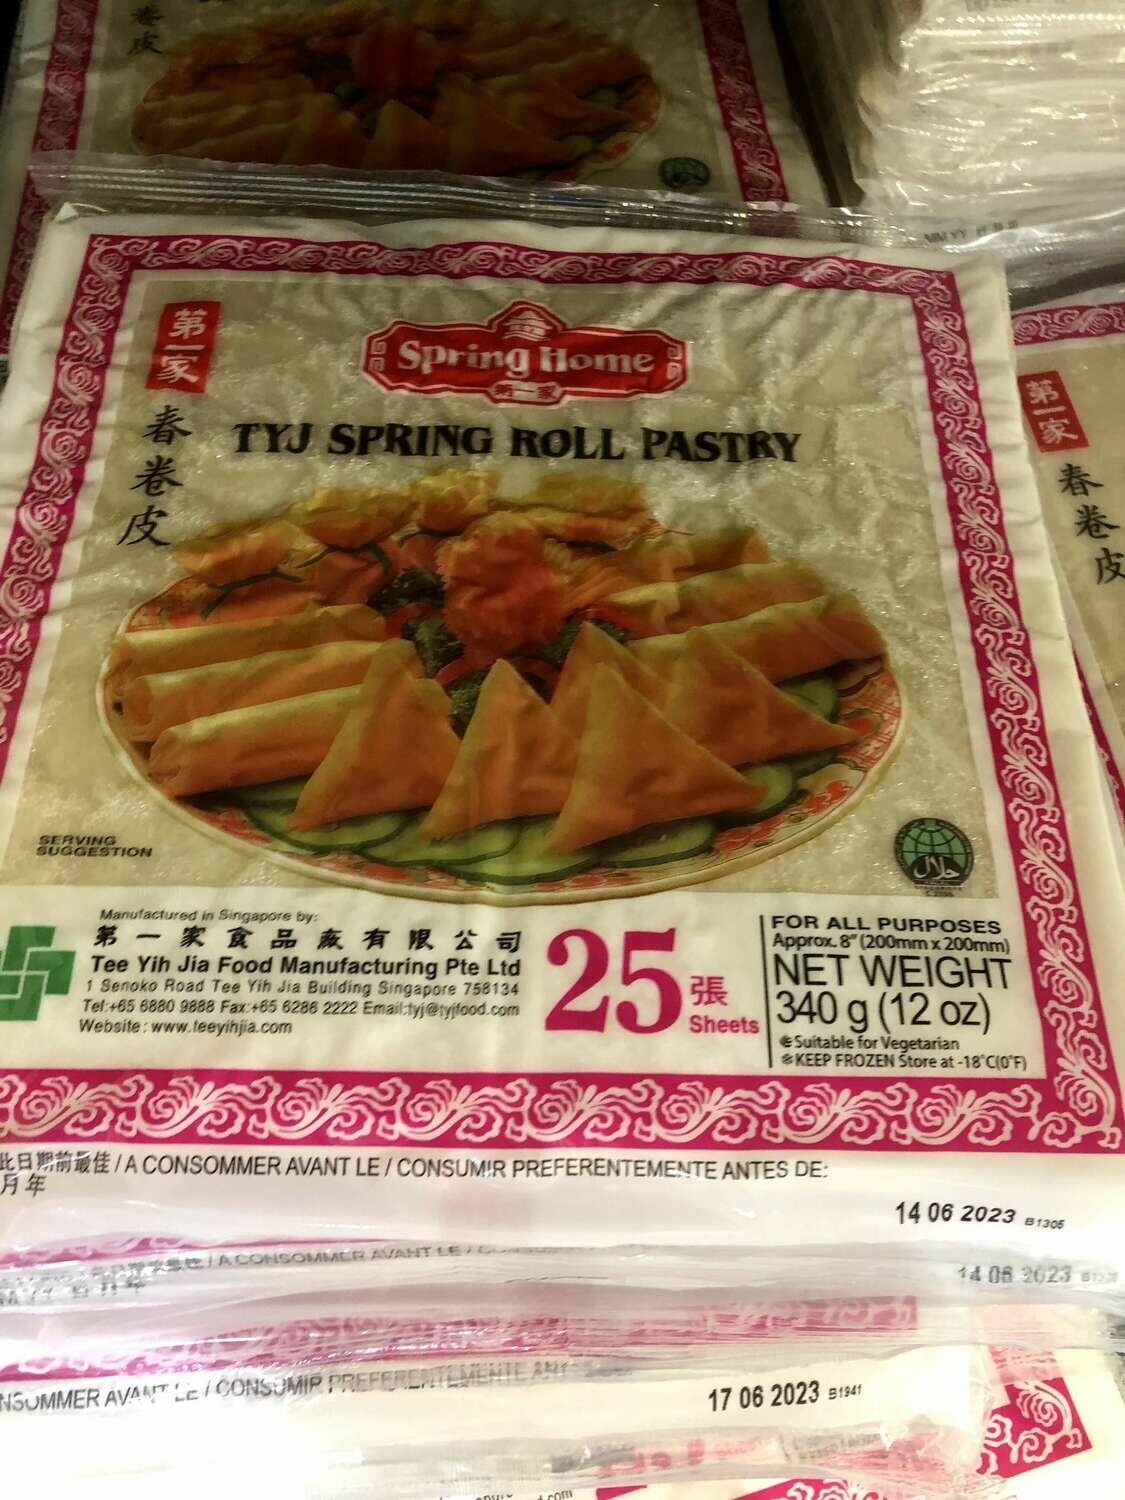 【RBF】Spring Home Tyj Spring Roll Pastry第一家 春卷皮 12oz